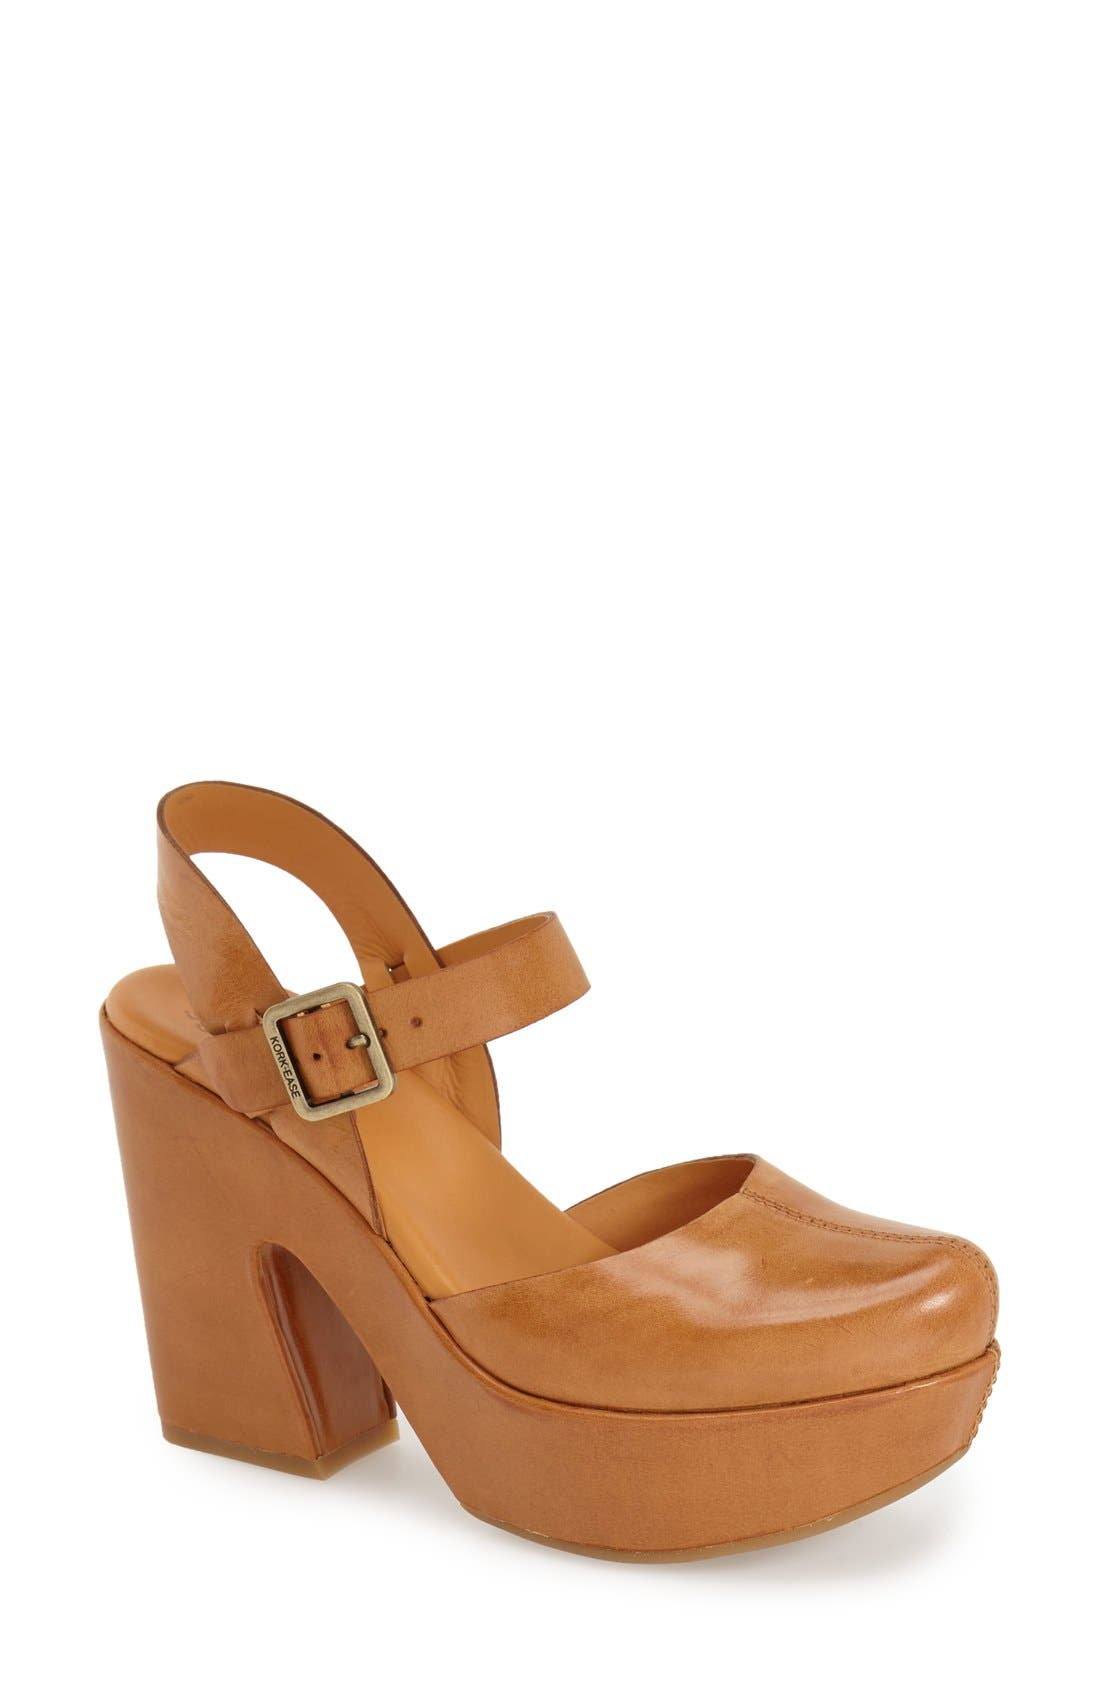 Alternate Image 1 Selected - Kork-Ease® 'Lanei' Sandal (Women)